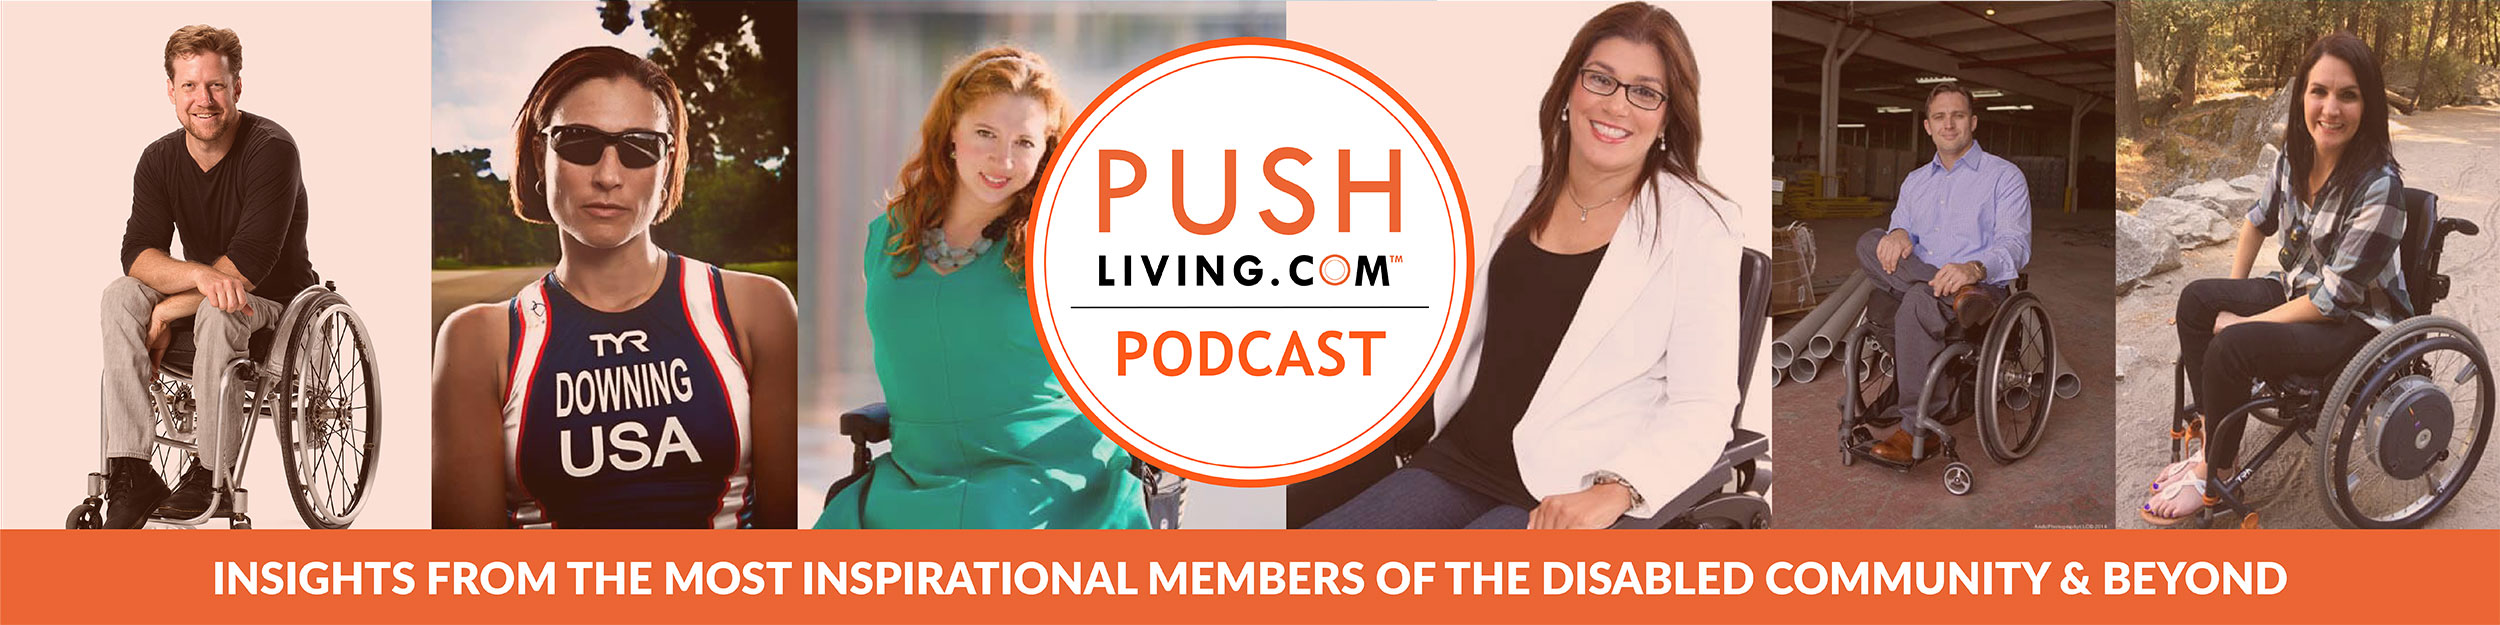 Pushliving Podcast - Insights from the most inspirational members of the disabled community & beyond